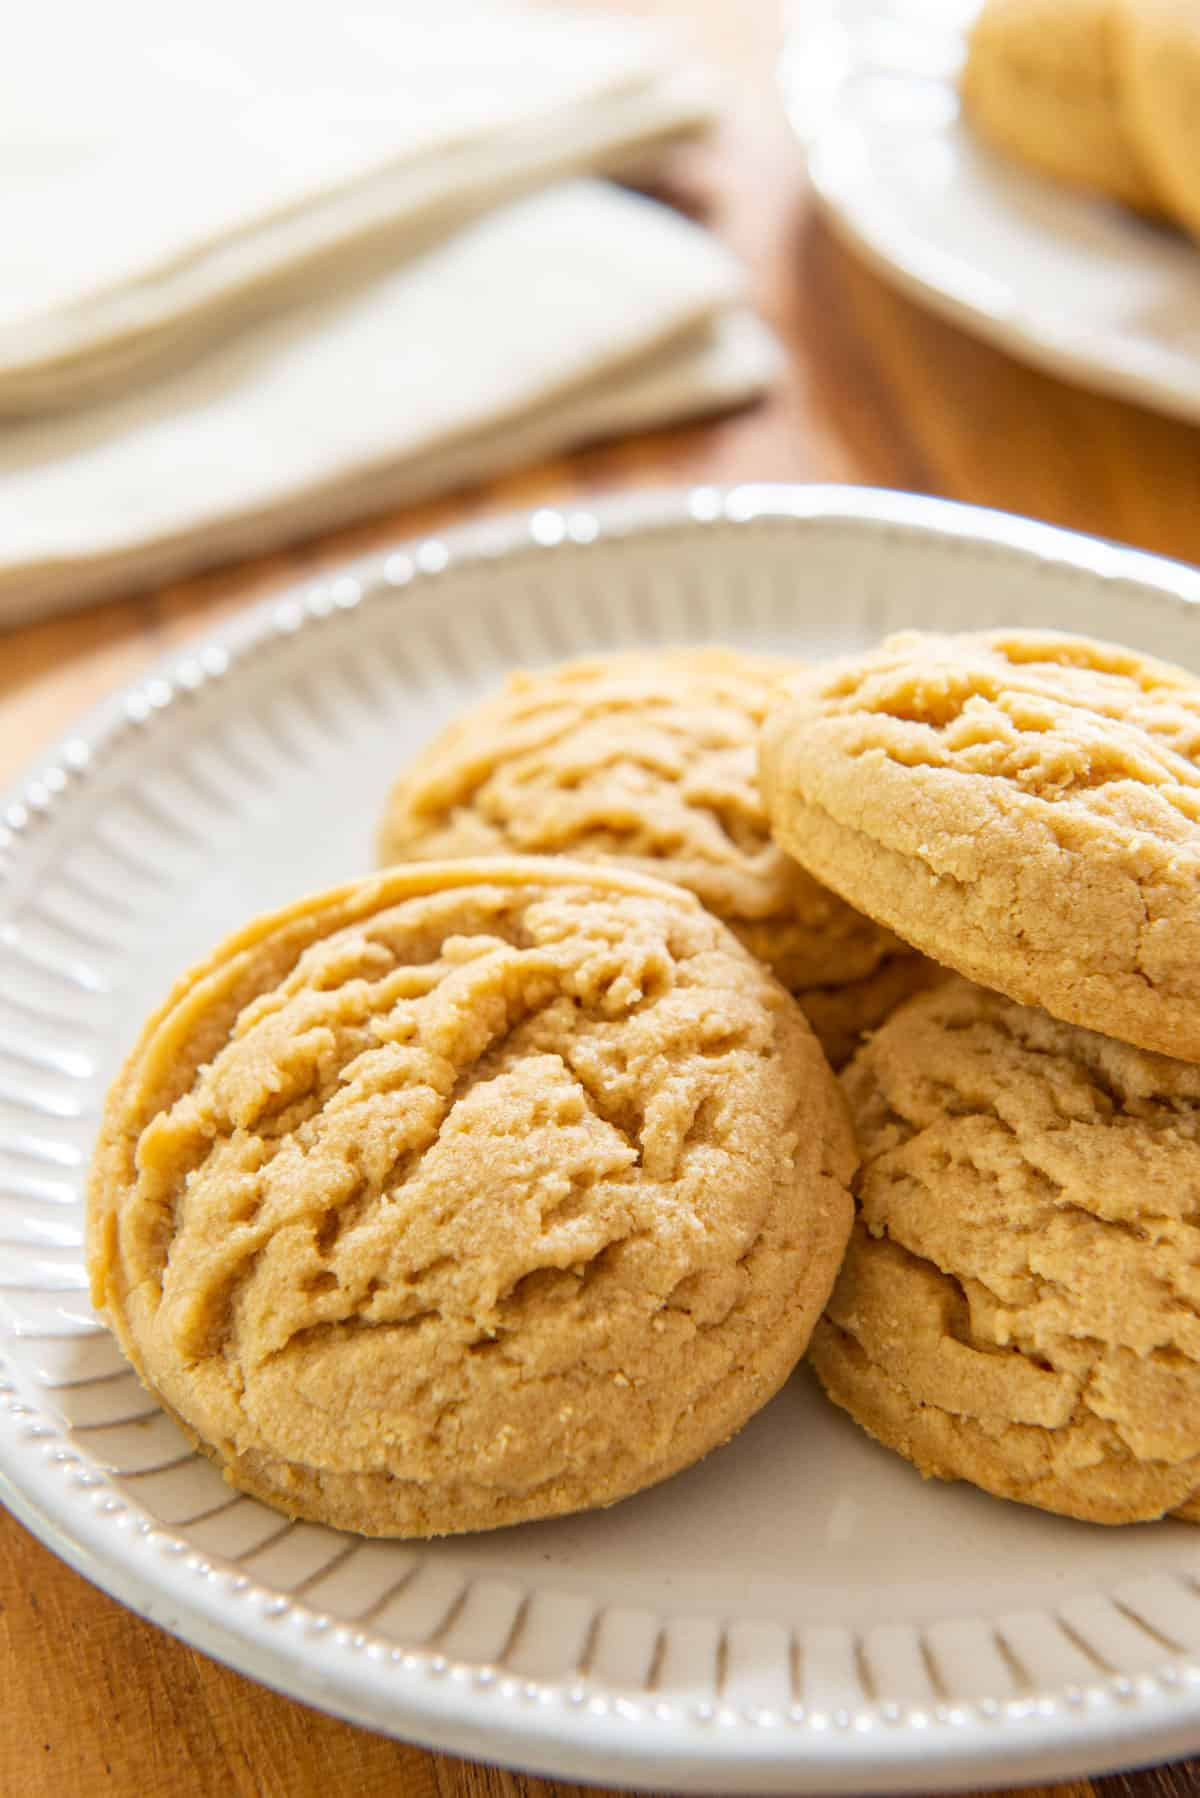 Peanut Butter Cookies On a White Dish with 4 Pieces